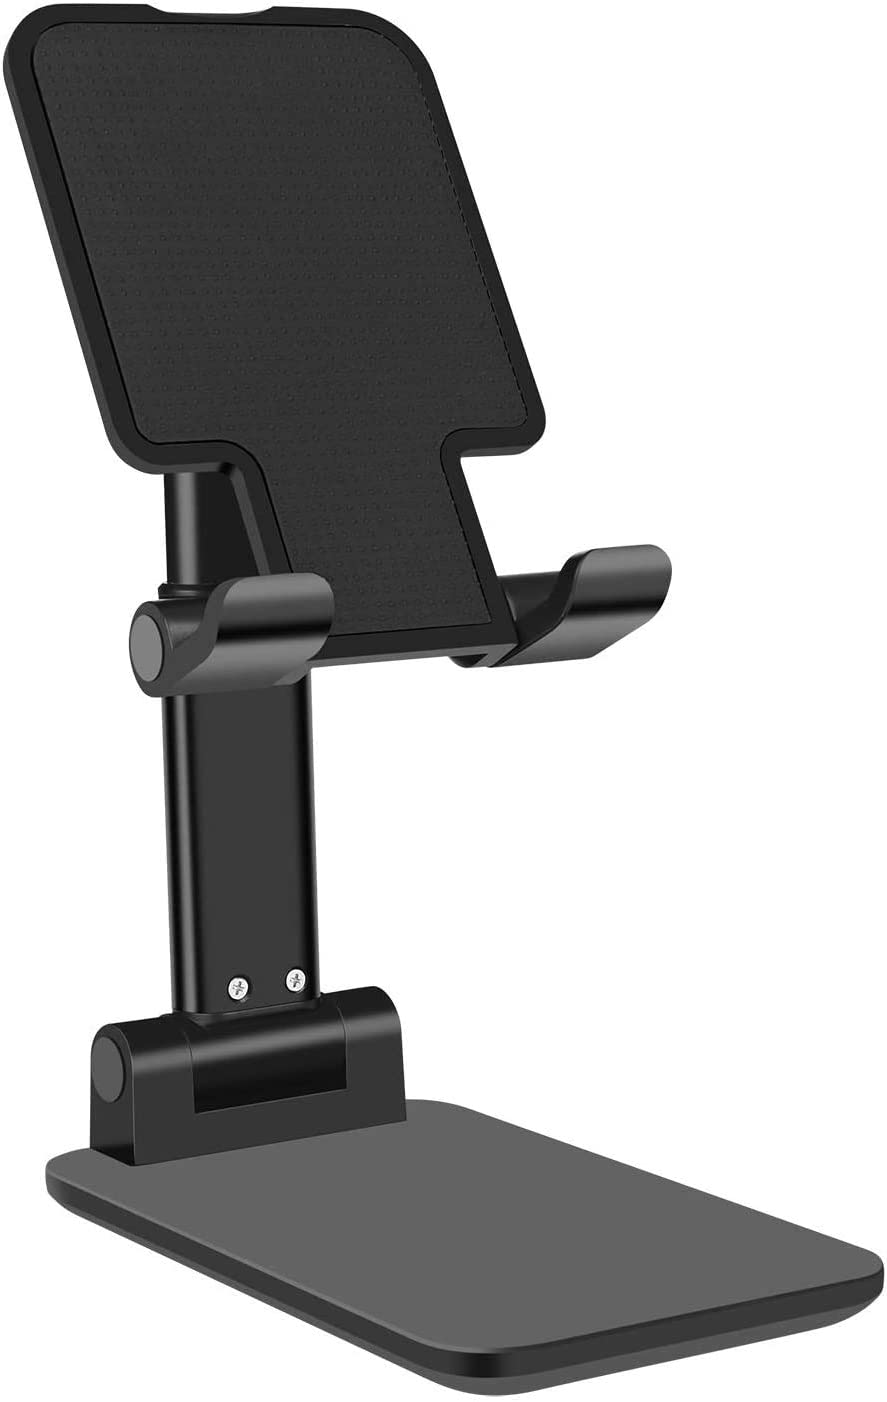 Foldable Cell Phone Stand Angle Height Adjustable Stable Portable Desktop Stand for iPhone 11 Pro Max and iPads, Home or Office Cell Phone Holder Dock for Samsung Galaxy Tabs, Google Nexus, LG (Black)